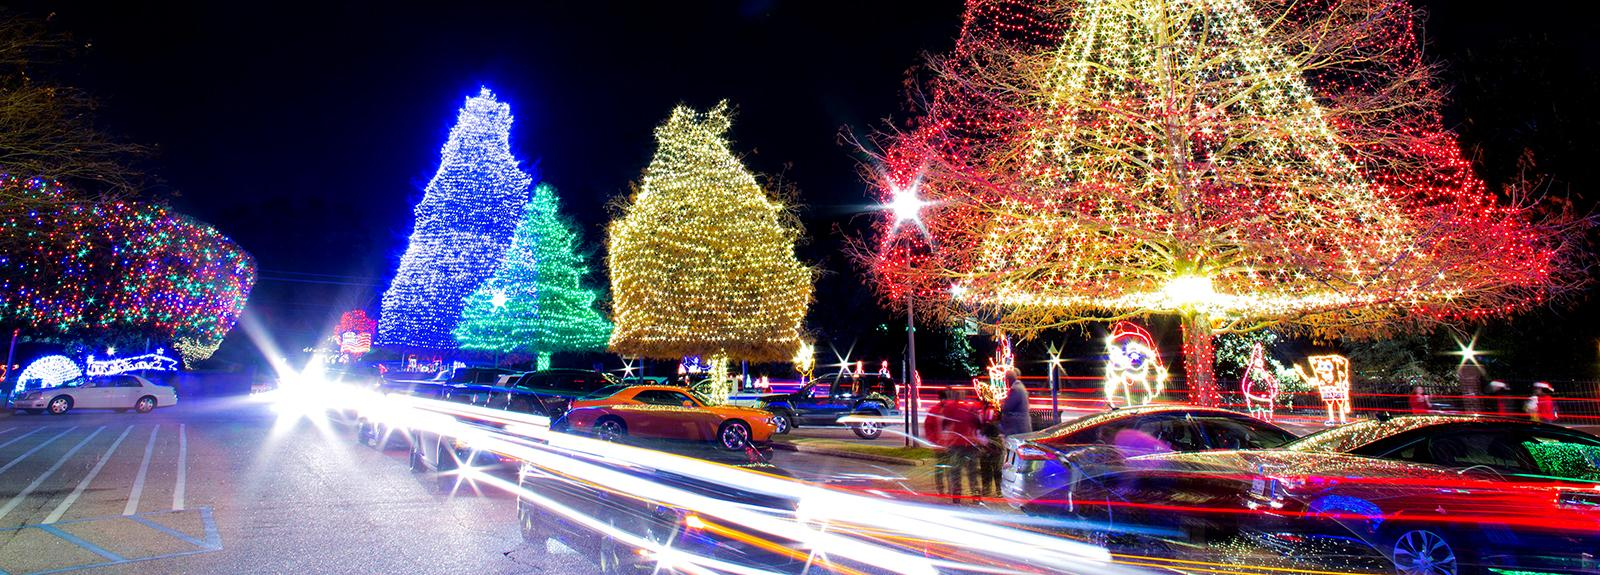 Cars Move Through Swan Lake Parking Lot as Lights Twinkle in the Trees Above